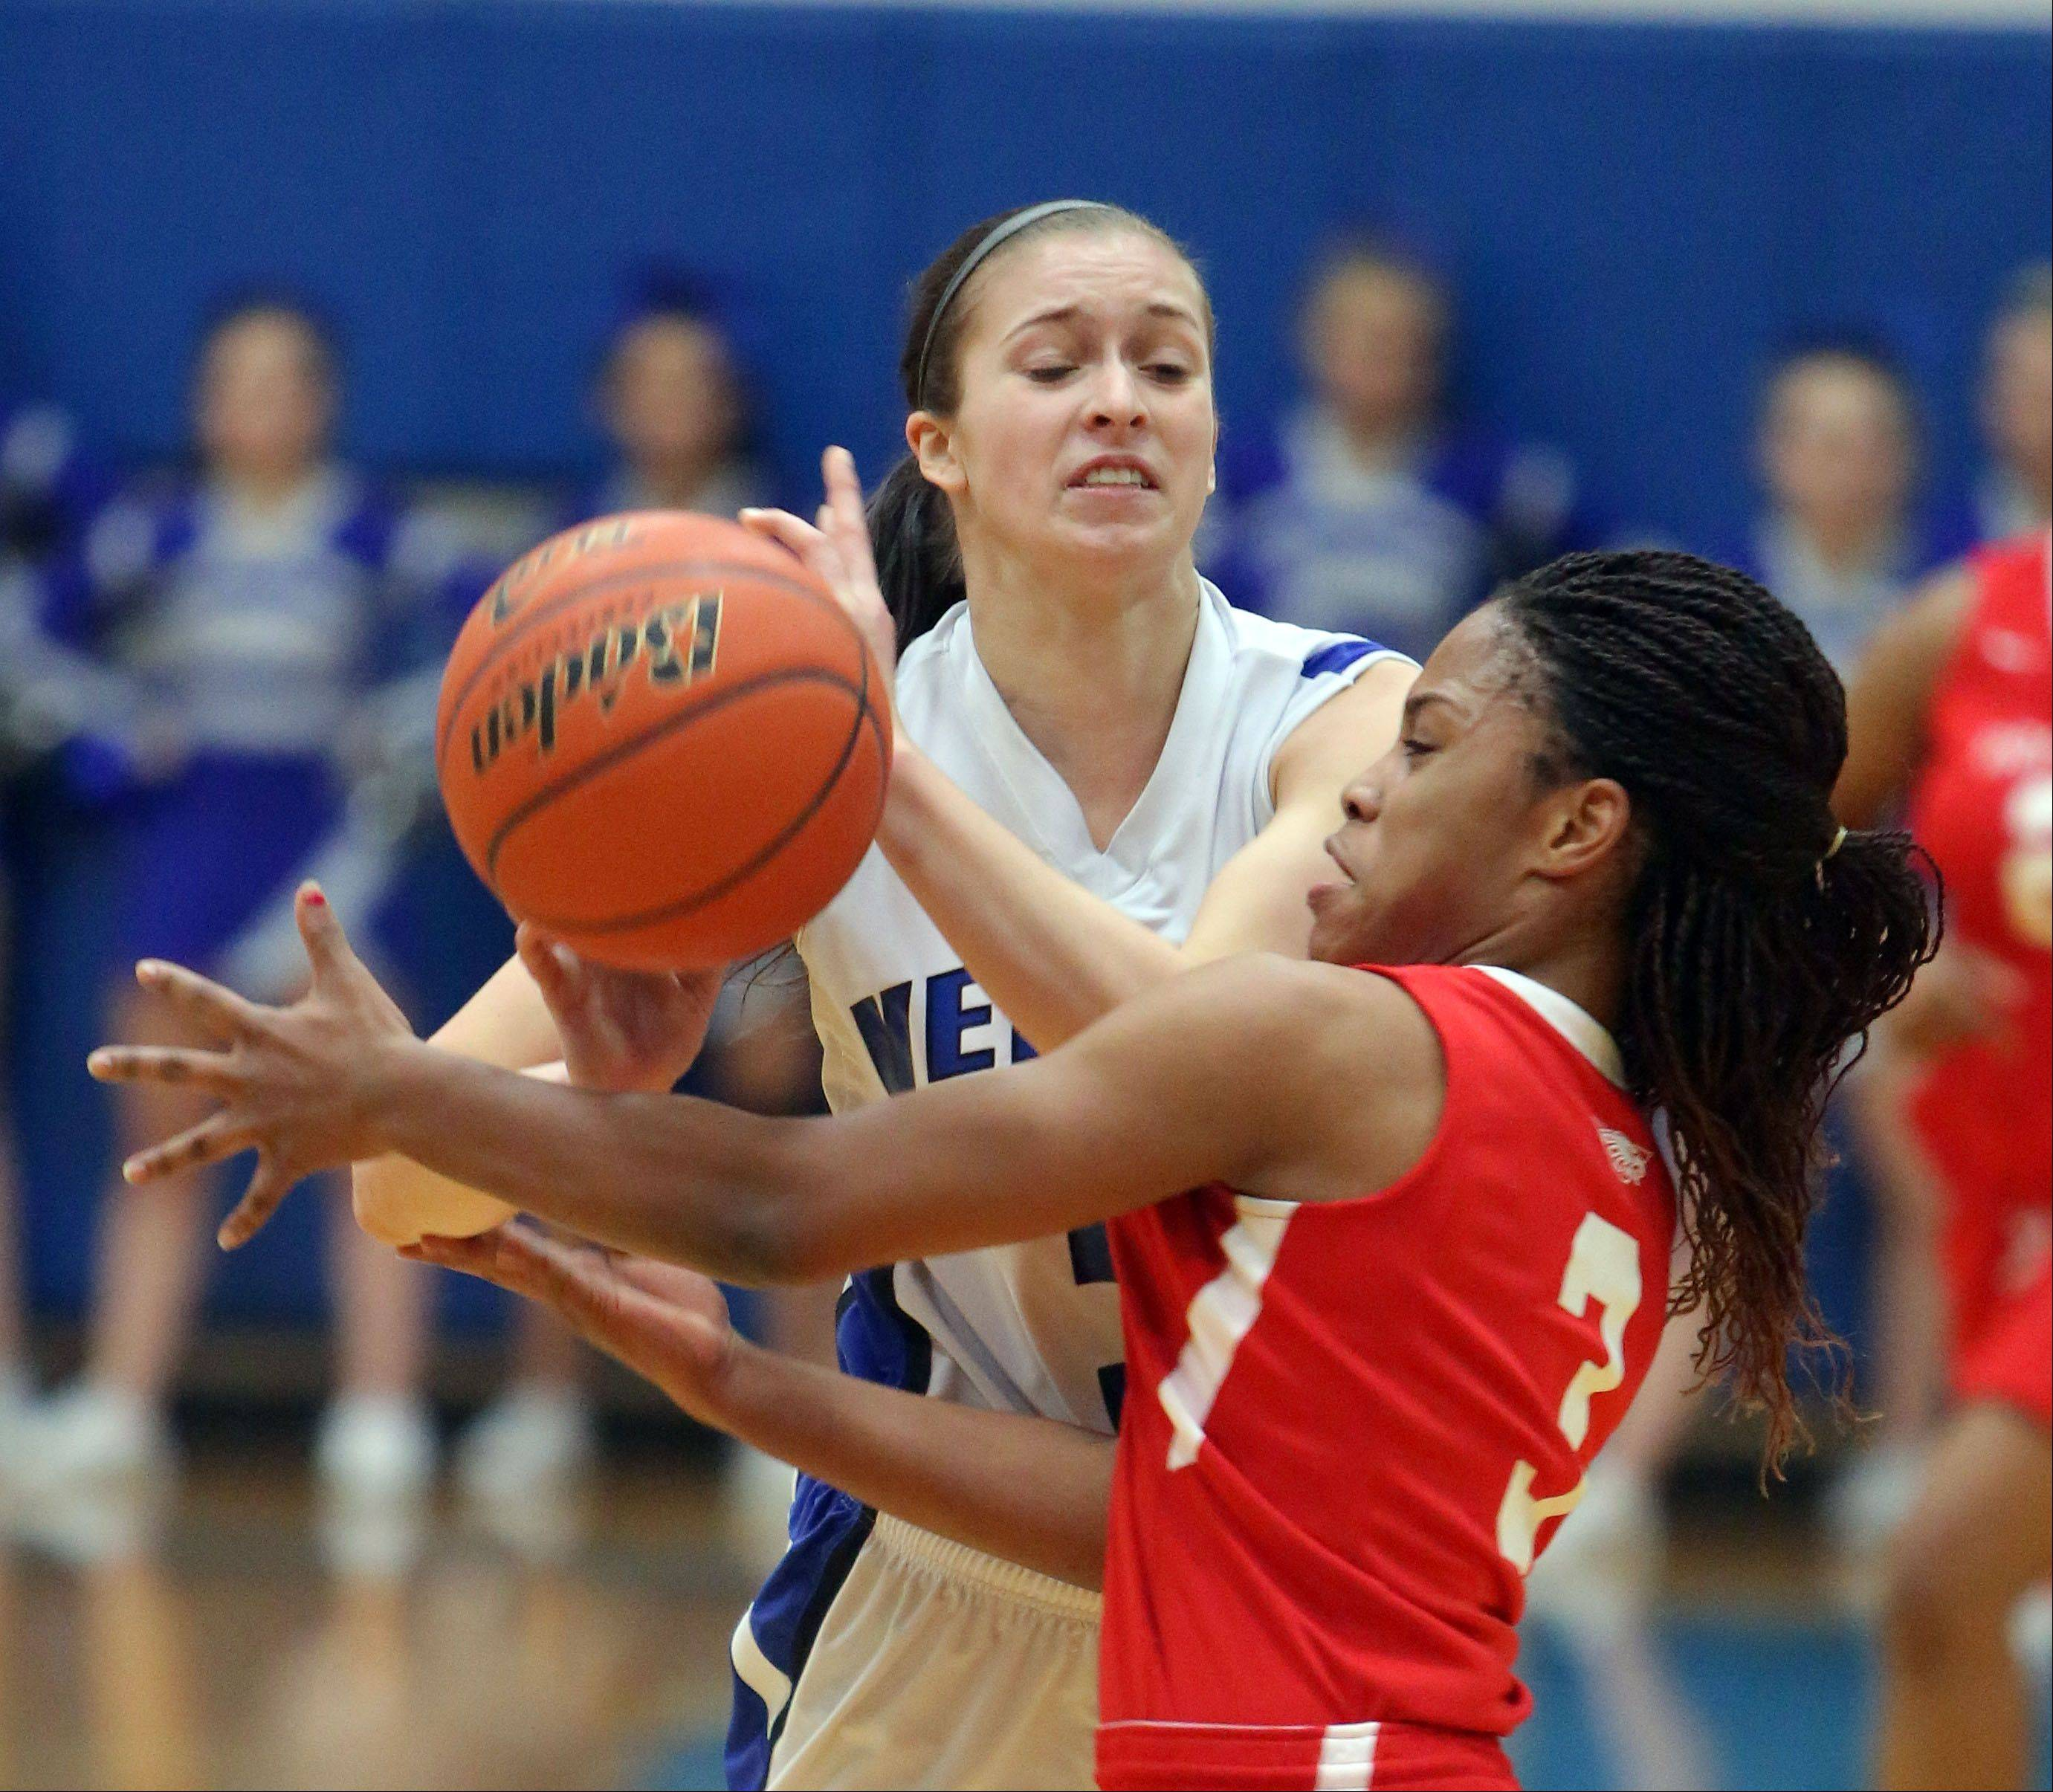 Vernon Hills' Dana Meline, left, and North Chicago's Alexis Means scramble for a loose ball.